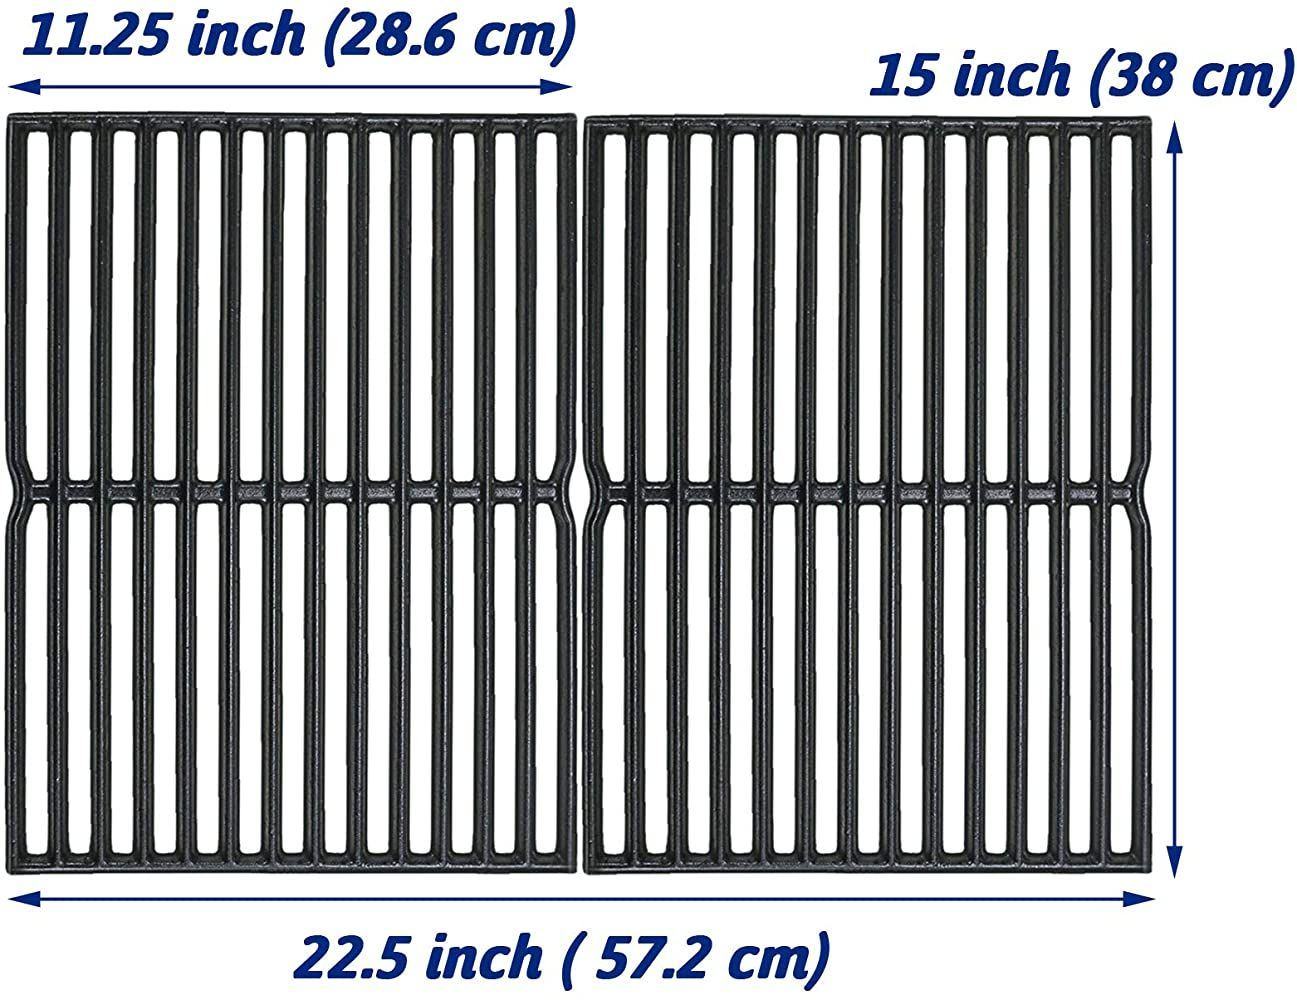 Utheer 7522 Cooking Grid Grate 15 X 11 25 Inch For Weber Spirit 200 210 With Side Control Spirit In 2020 Outdoor Cooking Fireplace Outdoor Cooking Table Cooking Stove